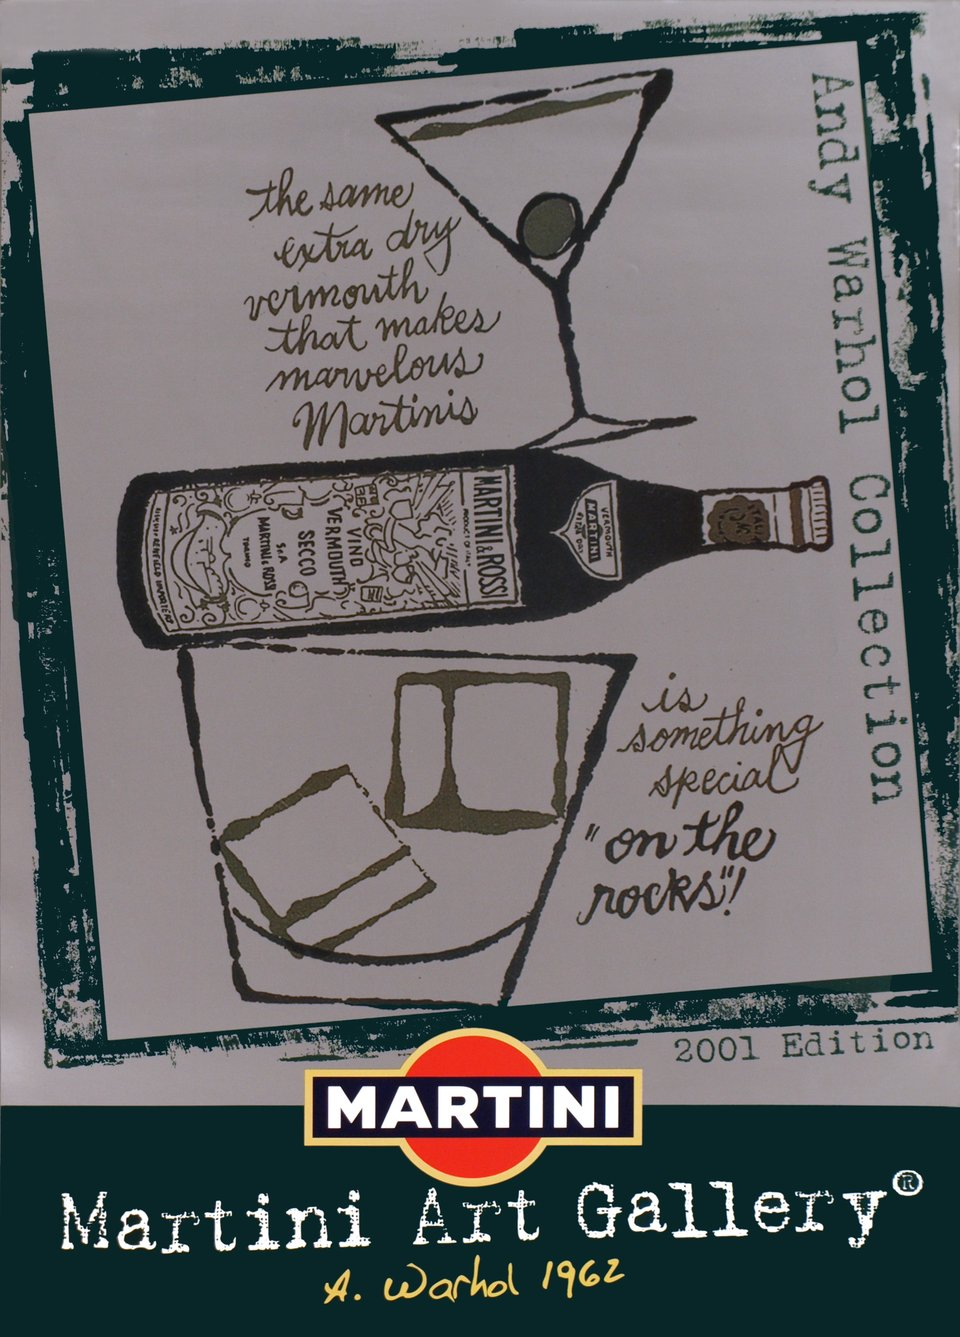 Martini Art Gallery, Andy Warhol 1962, edition 2001 – Affiche ancienne – Andy WARHOL – 2001